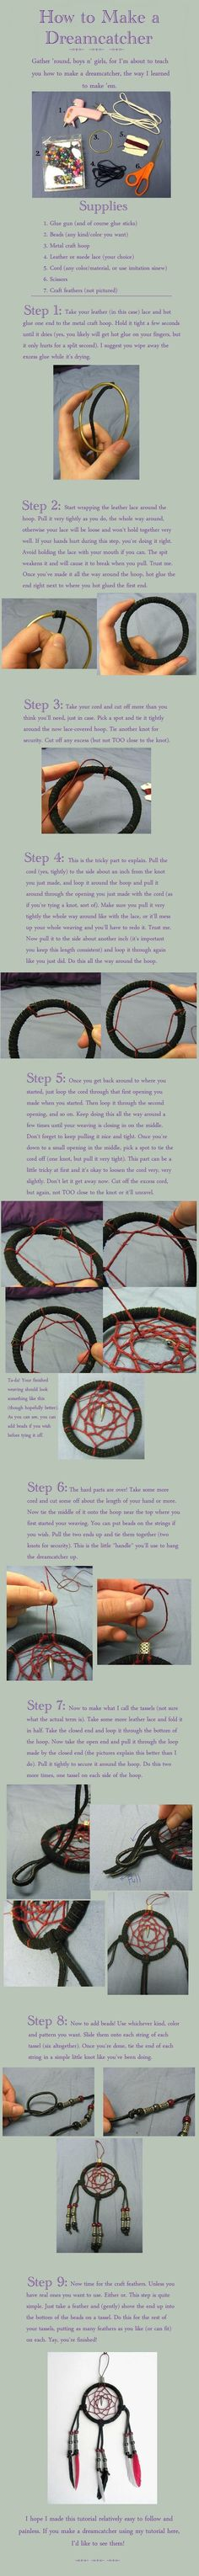 DIY/Tutorials/Crafts / How to Make a Dreamcatcher The dream catcher is hung above a sleeping area in a place where the morning light can hit it. The nature of the Dream Catcher will attract all sorts of dreams to its webs. When bad dreams come, they do not know the way through the web and get caught in the webbing where the first light of day causes them to melt away and perish. The good dreams knowing the way go through the center of the web and slide down the feather to the sleeper below.